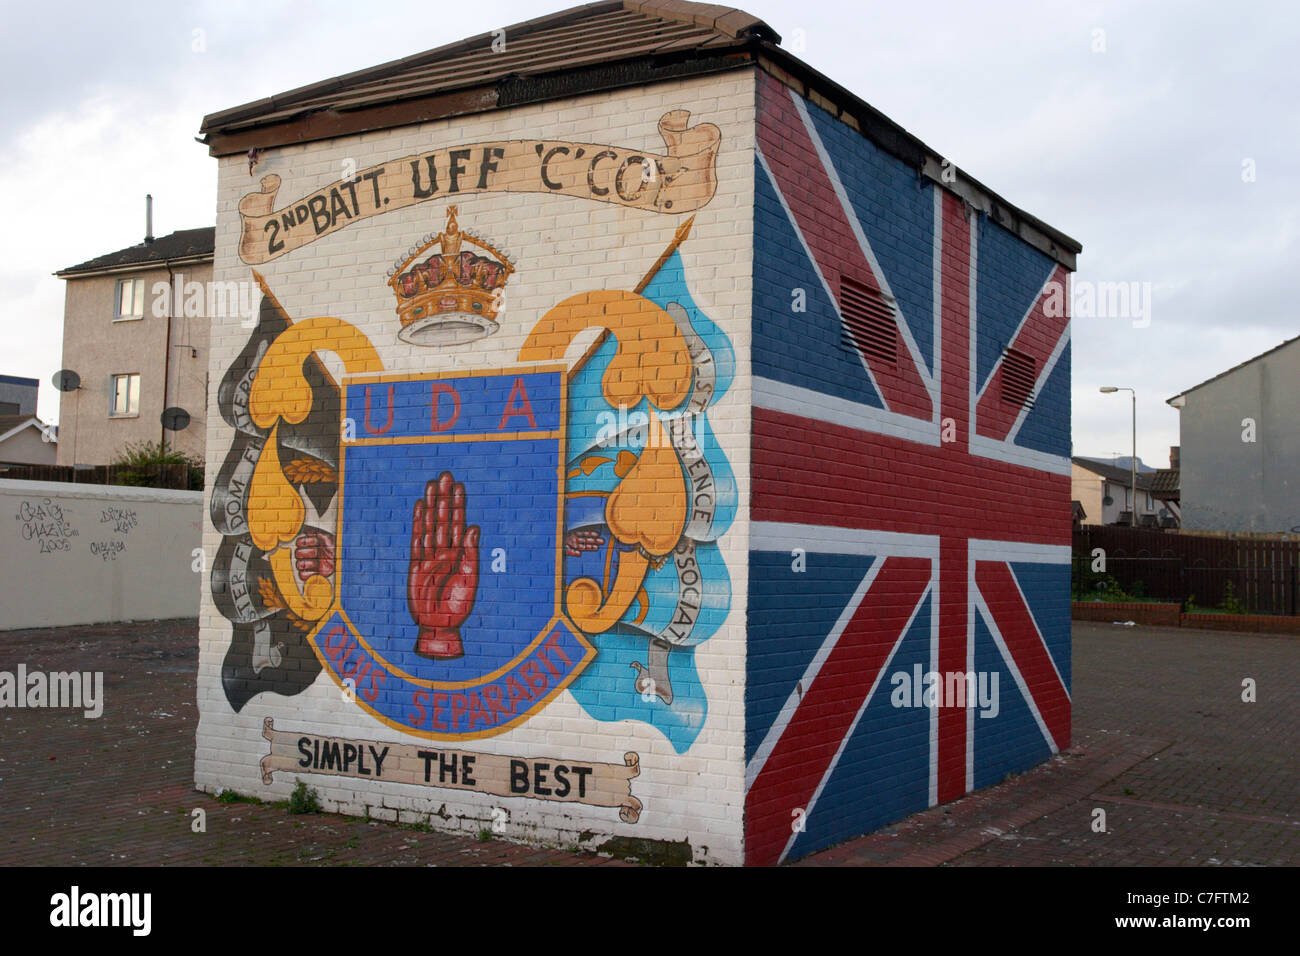 Uda uff shankill road loyalist wall mural painting west for Murals belfast